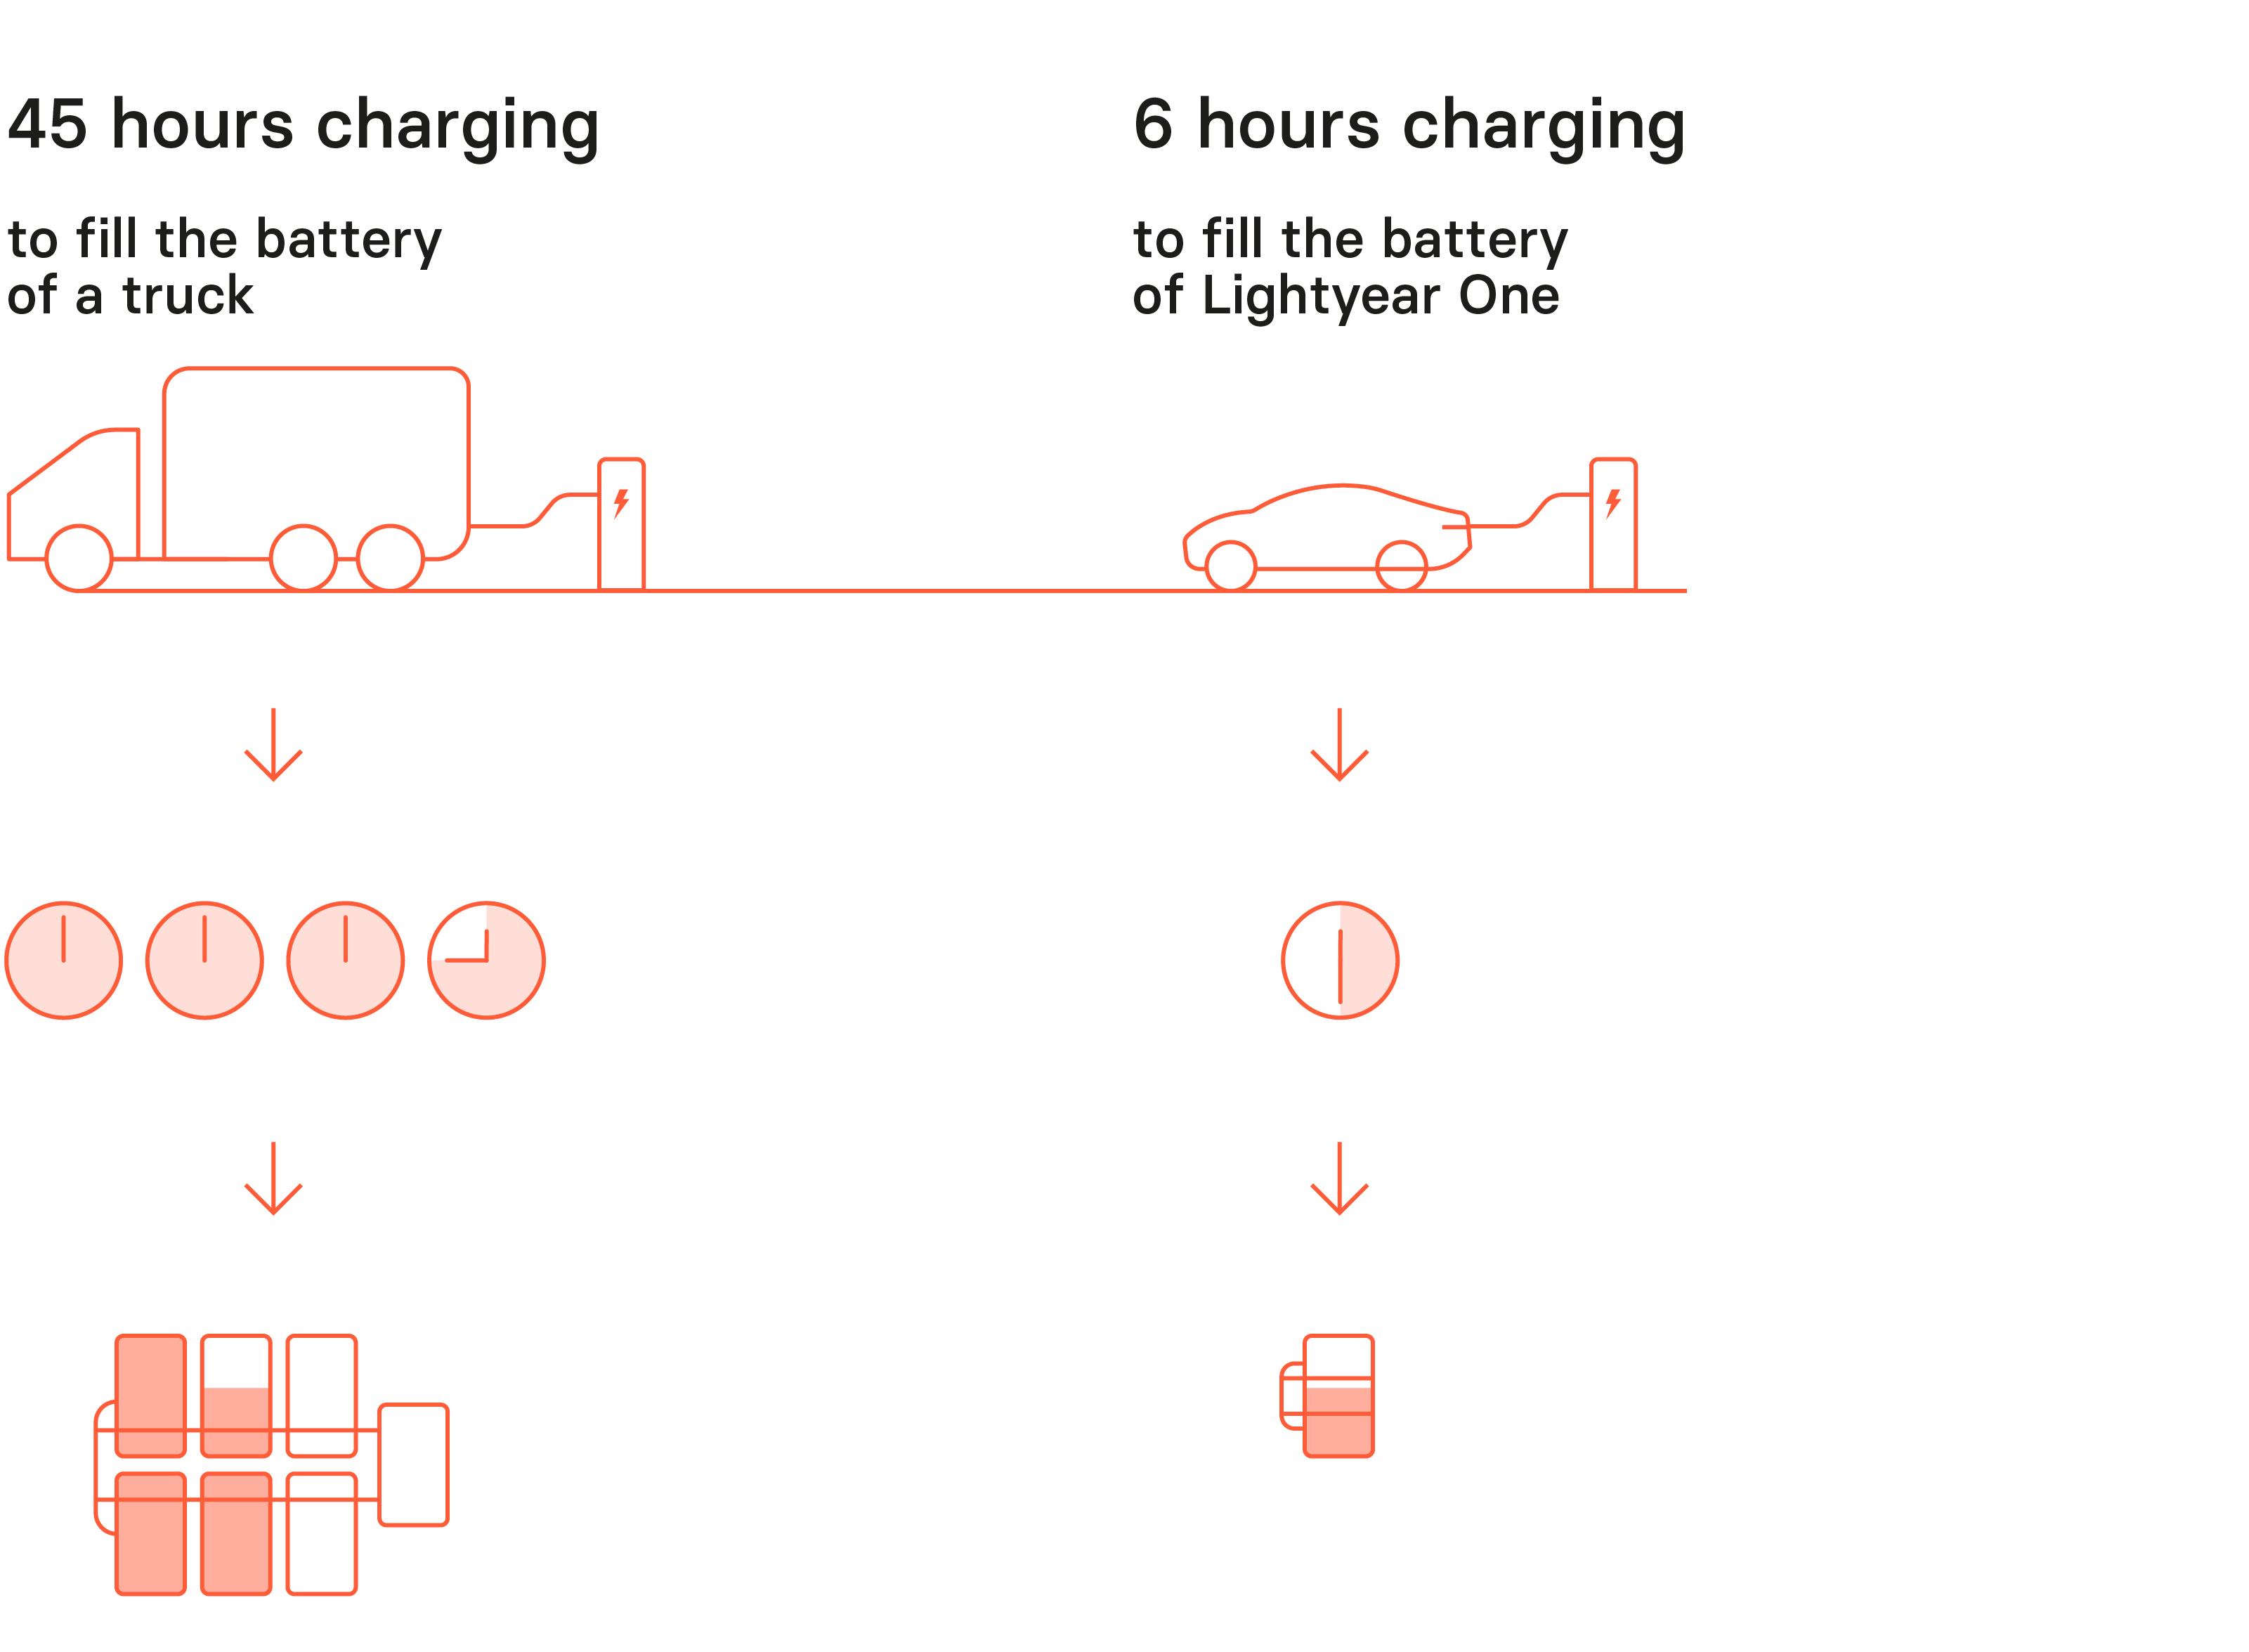 Illustrated charging speed differences